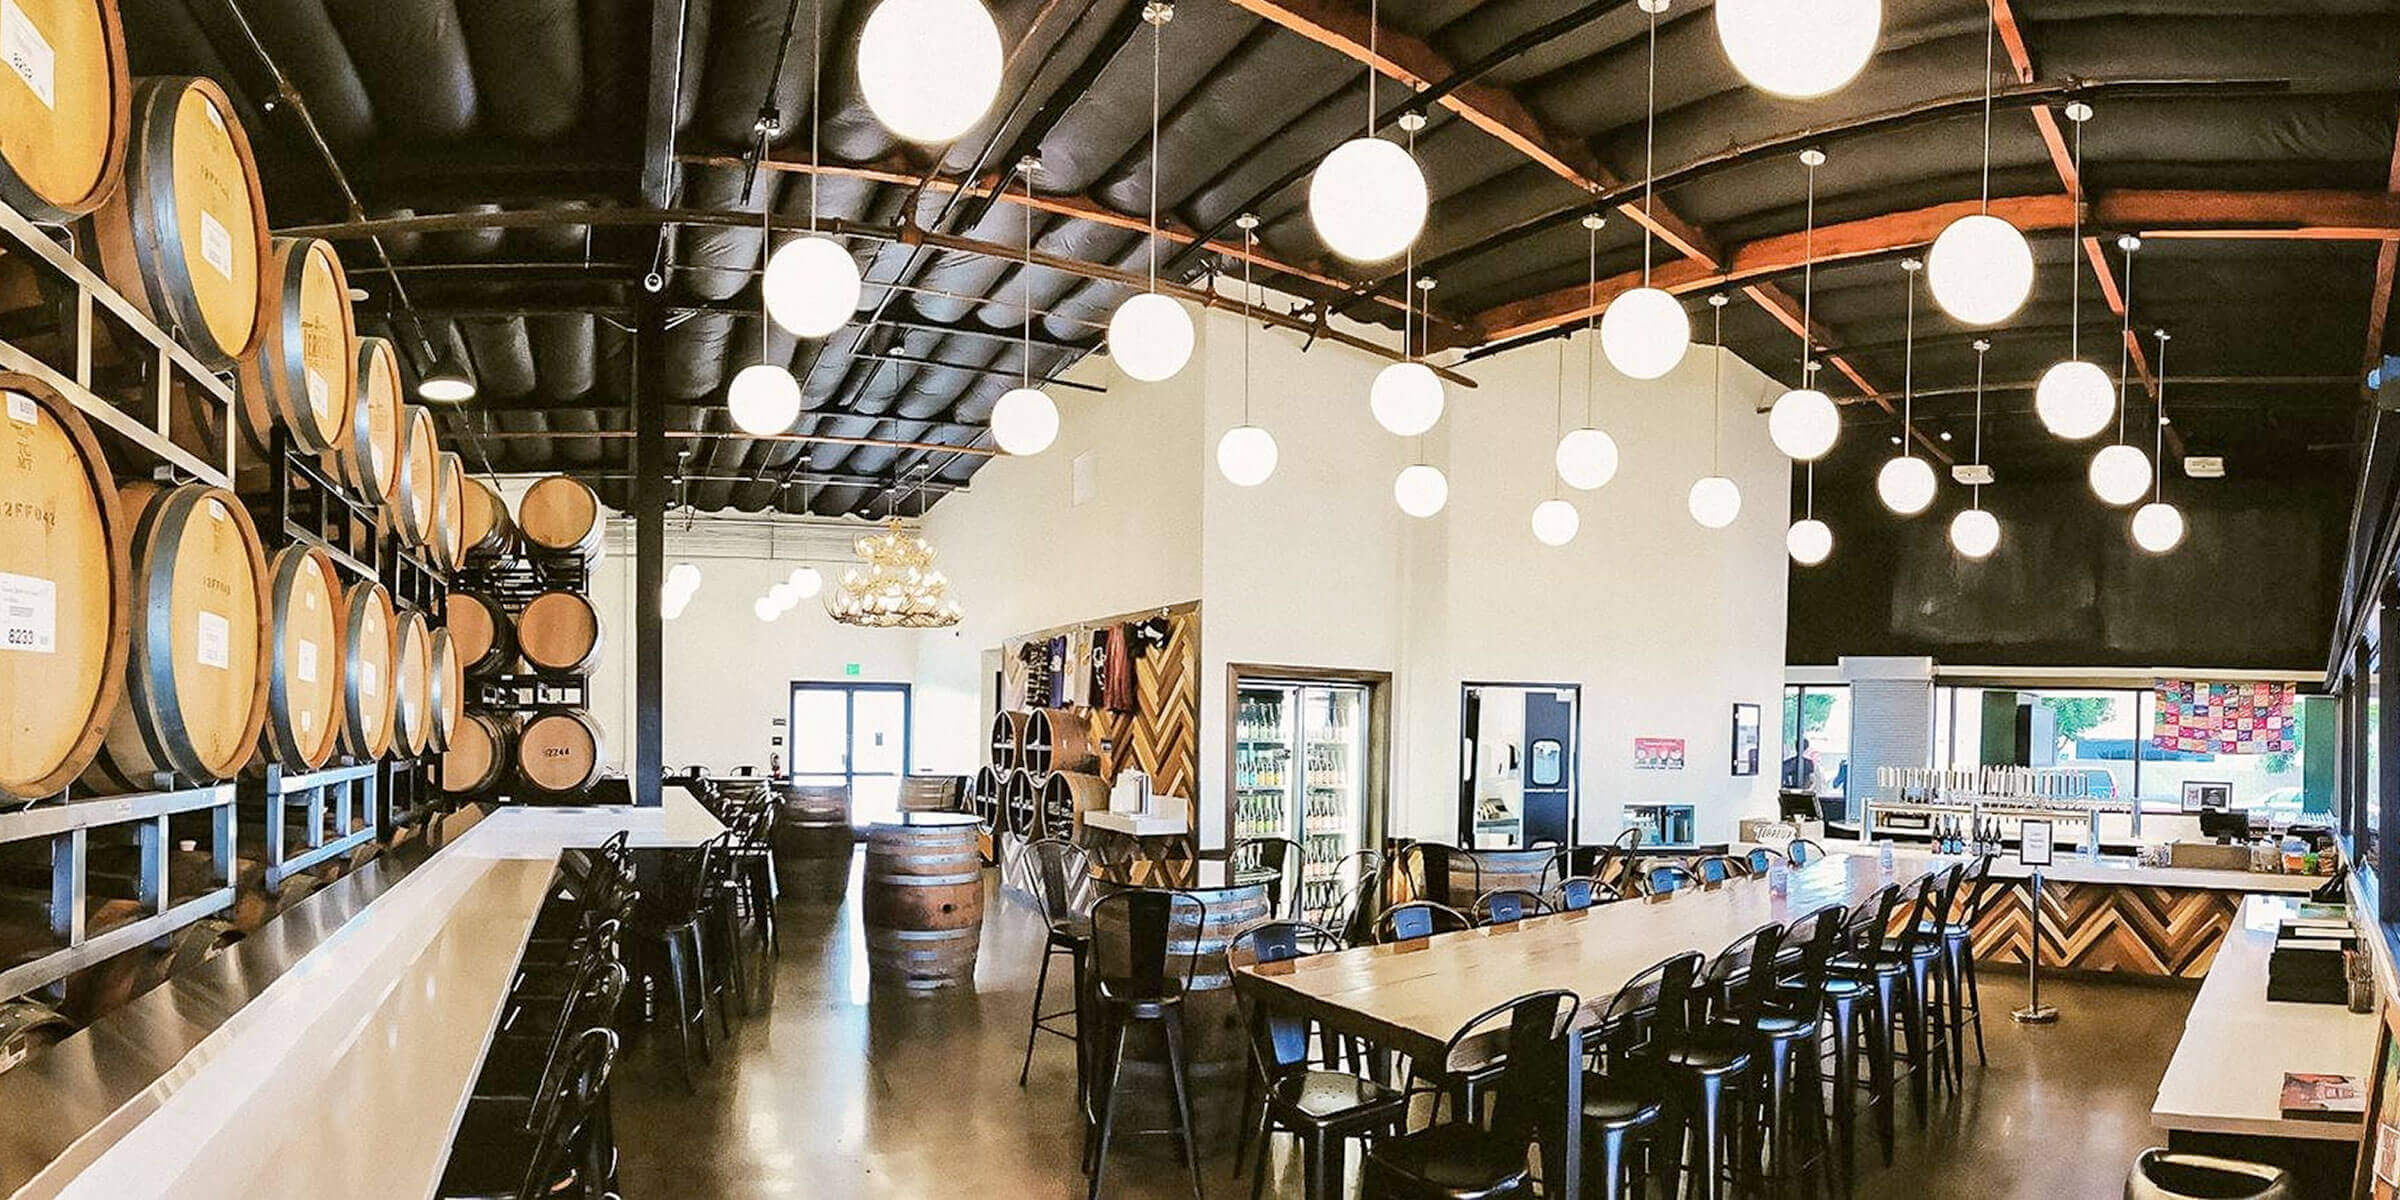 Inside the taproom at Bruery Terreux in Anaheim, California